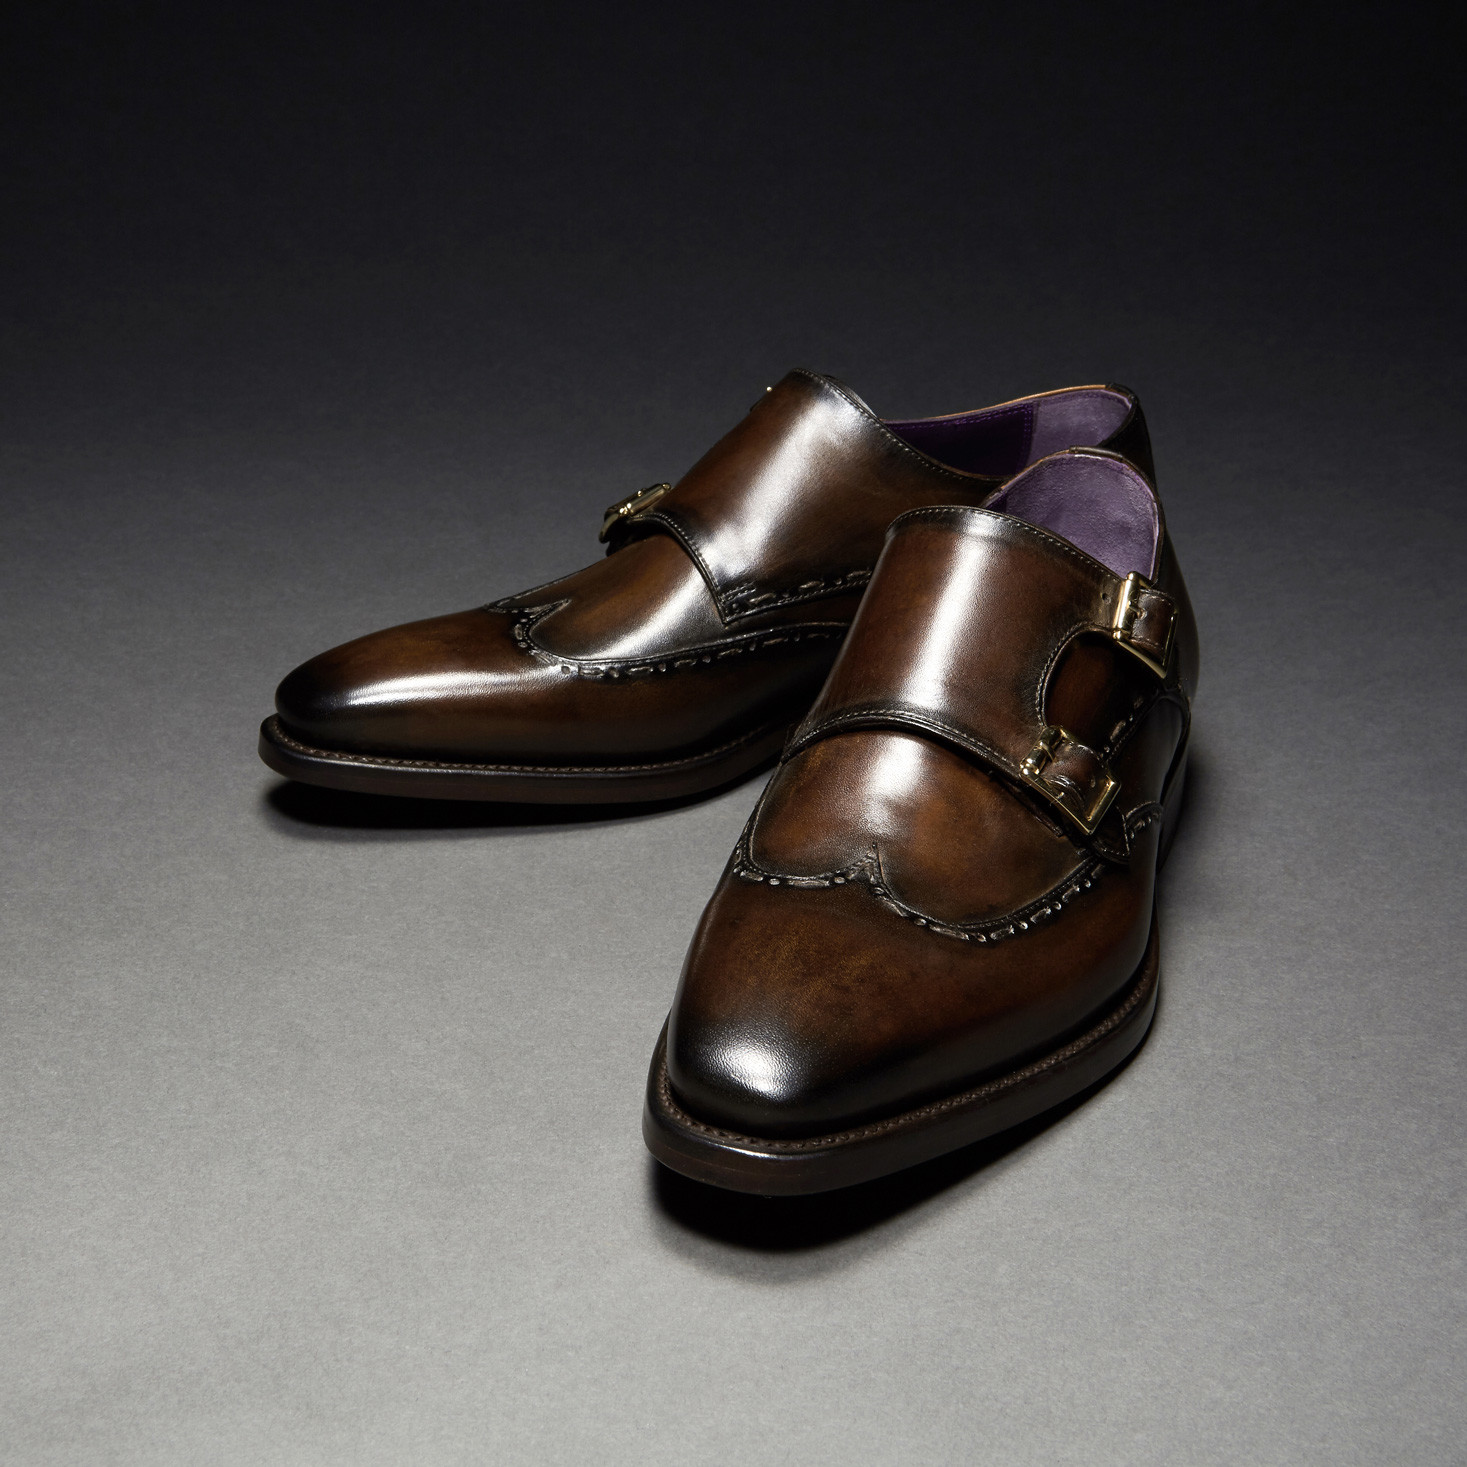 [Custommania X The shuri] PATINA DOUBLE MONK STRAP MKS No.464